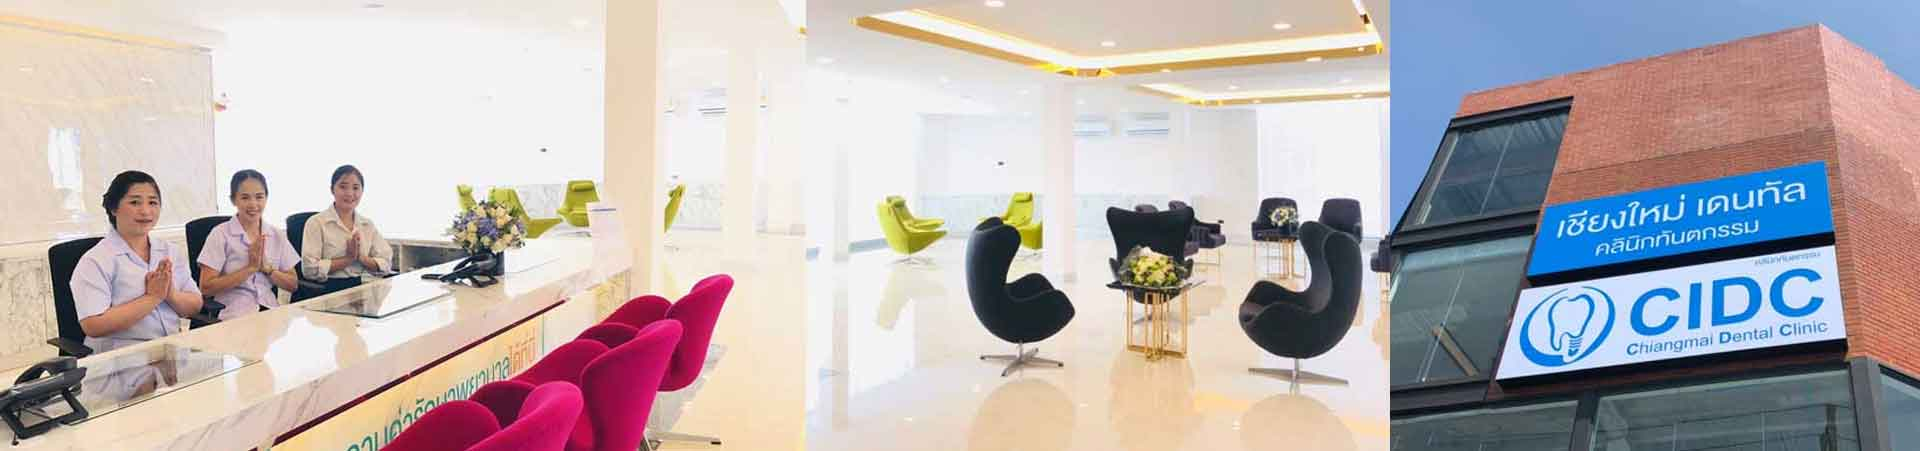 Chiangmai International Dental Clinic